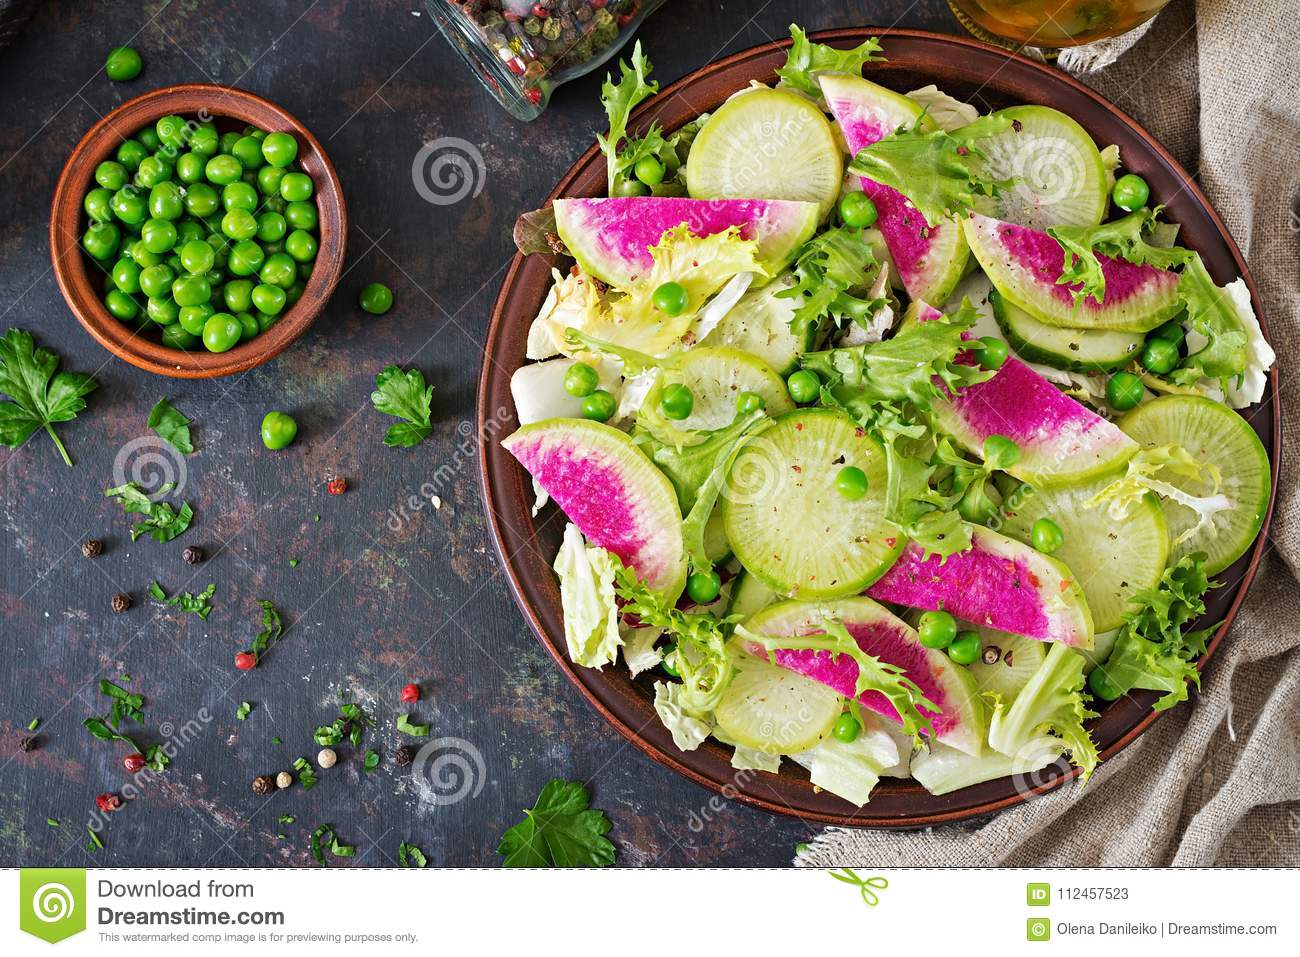 Salad from radish, cucumber and lettuce leaves. Vegan food. Dietary menu.